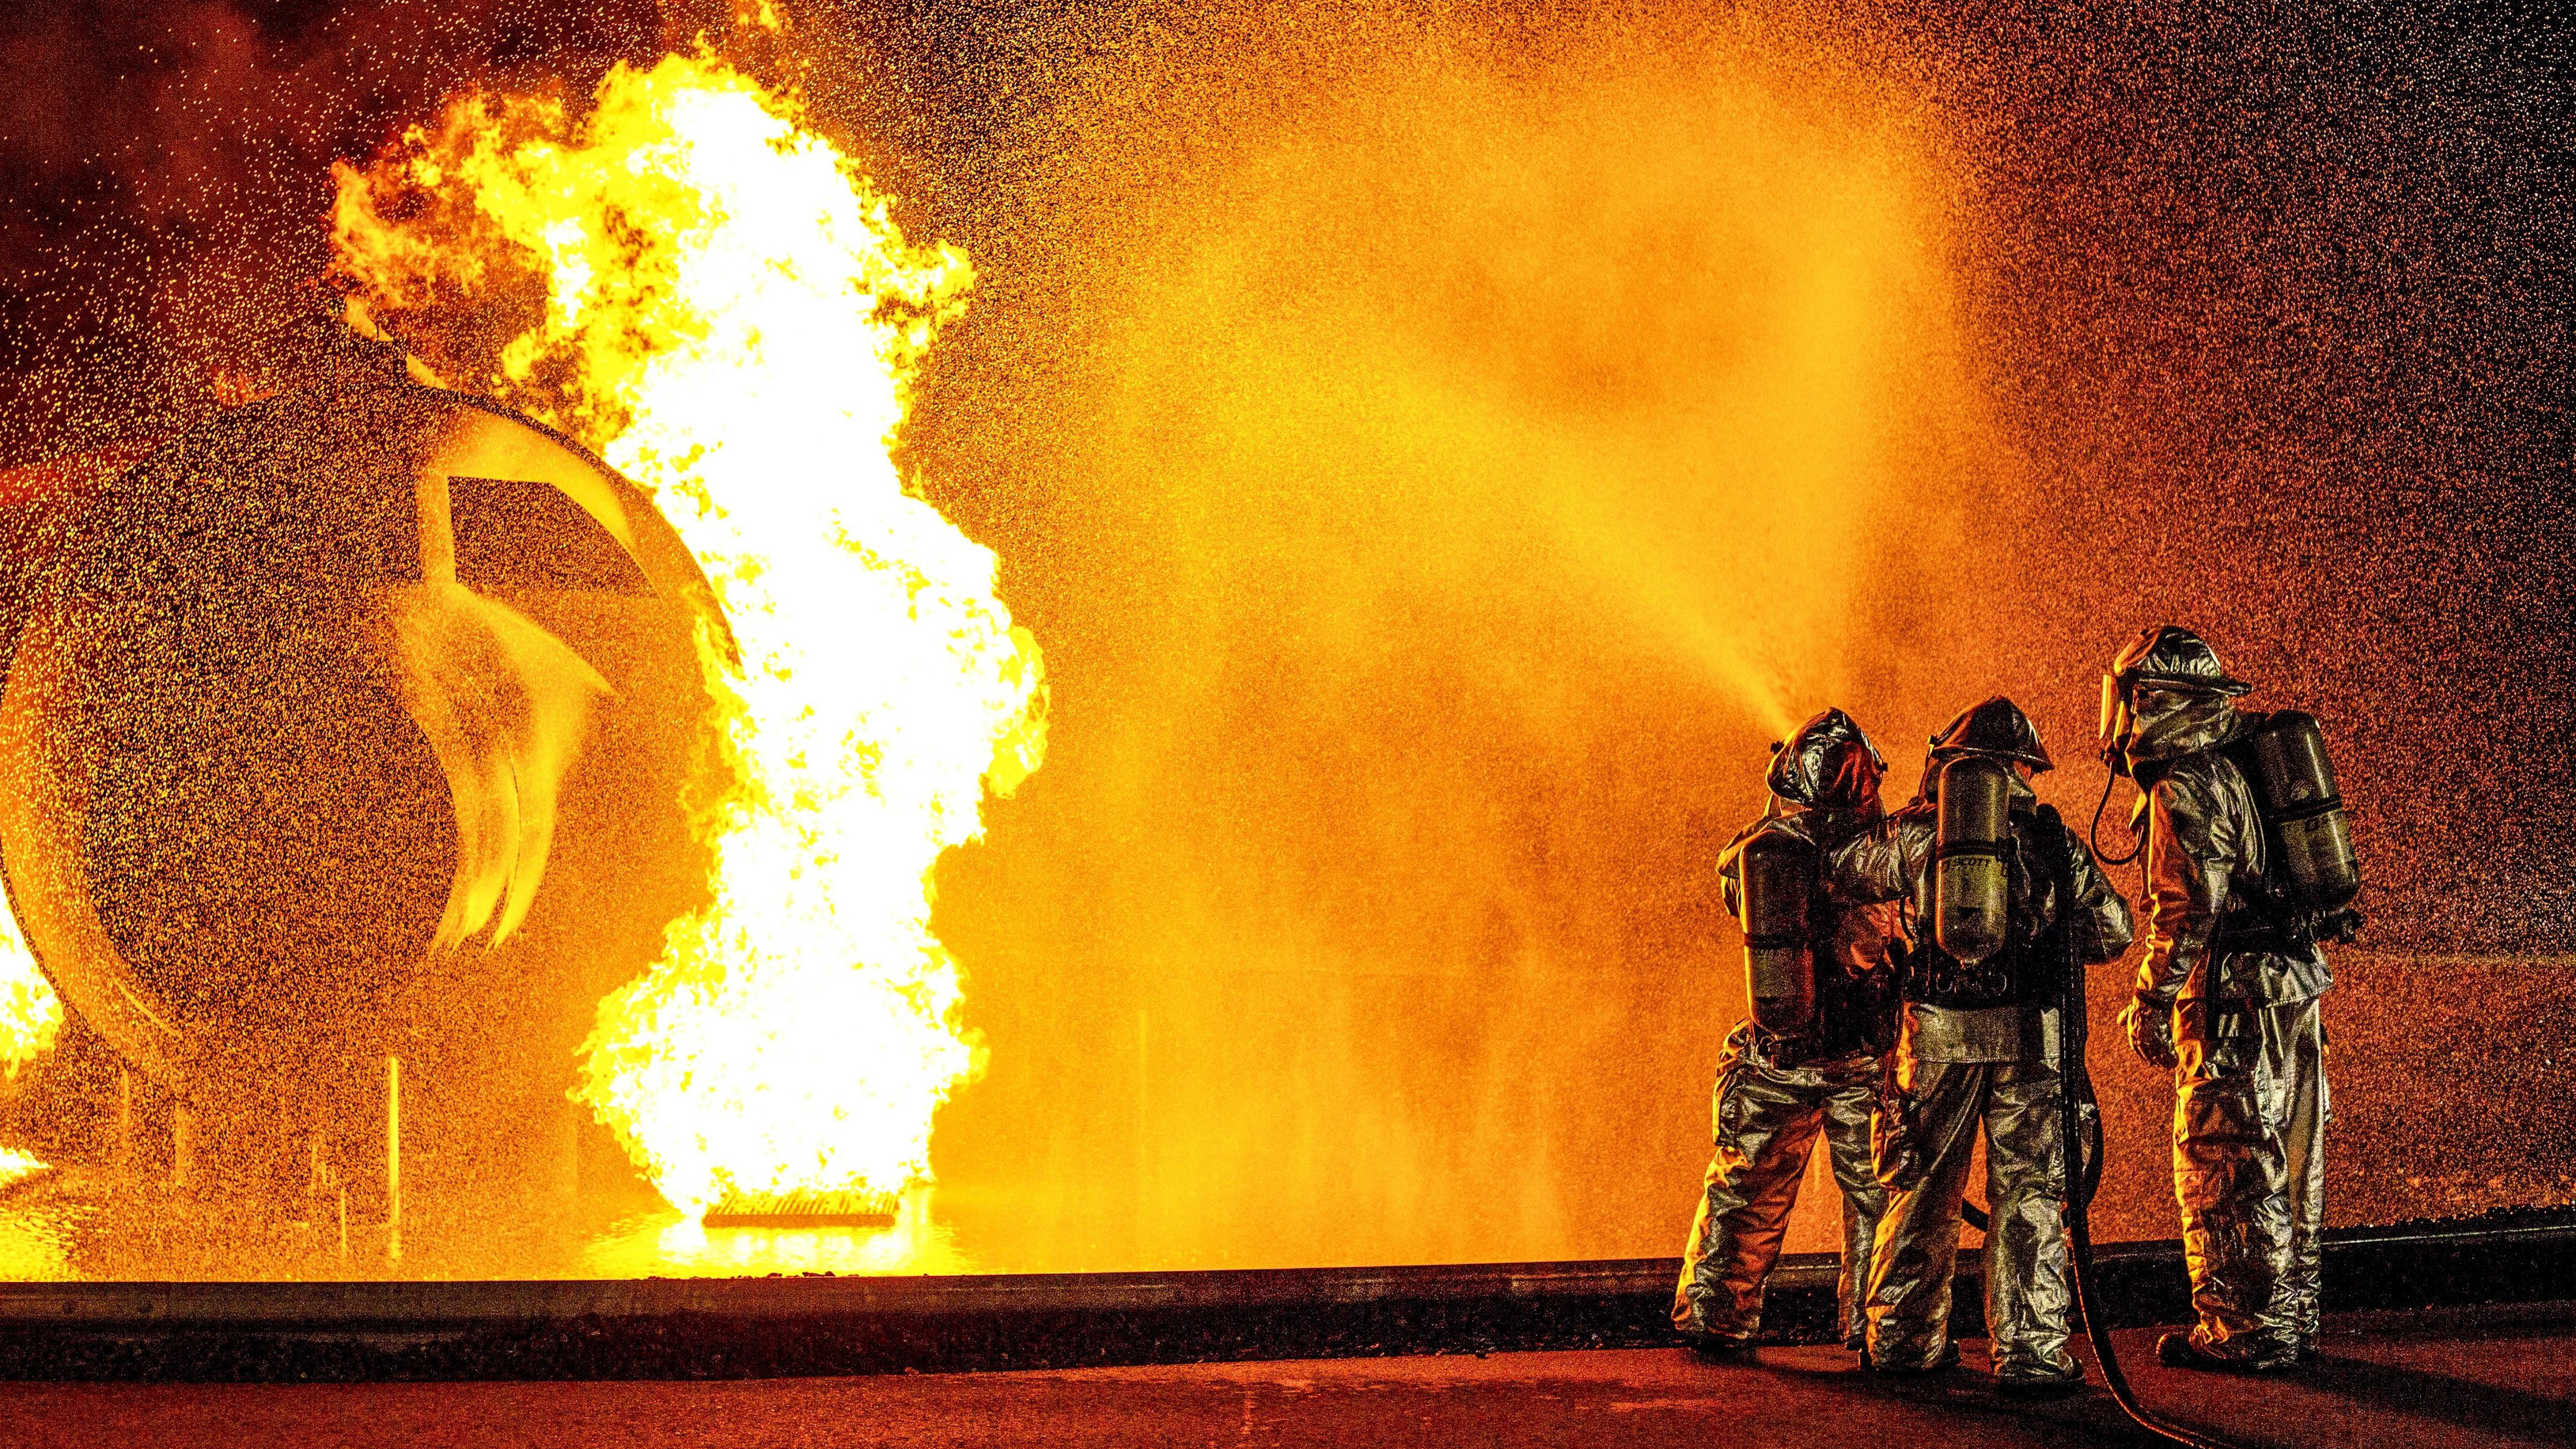 Aircraft Rescue and Firefighting (ARFF) Marines with Headquarters and Headquarters Squadron conduct fire containment drills at Marine Corps Air Station Iwakuni, Japan, Oct. 12, 2018. The training was conducted in order to maintain proficiency extinguishing aircraft fires in support of the air station's mission of launching and recovering aircraft. (Sgt. Akeel Austin/Marine Corps)